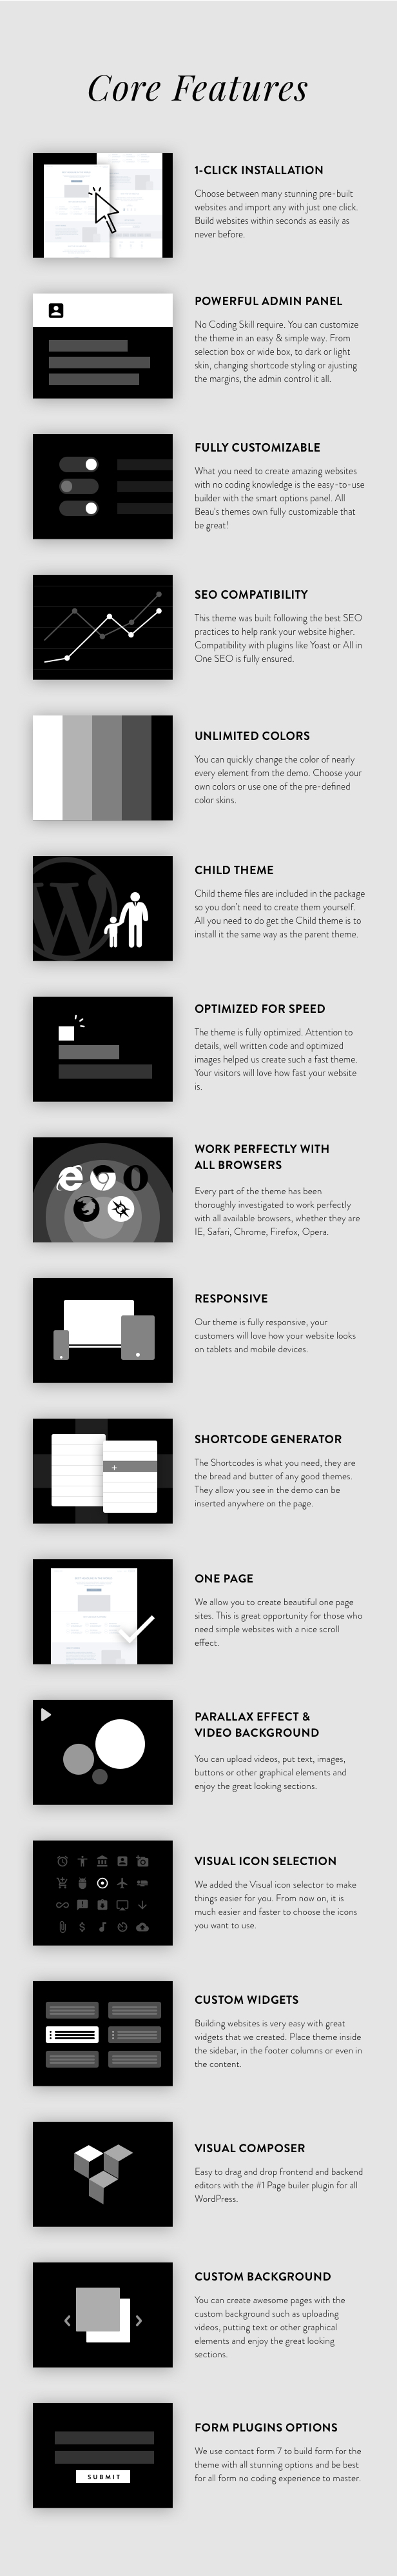 FilmMaker WordPress Theme: Film Studio - Movie Production - Video Blogger - Creative Agency - 4